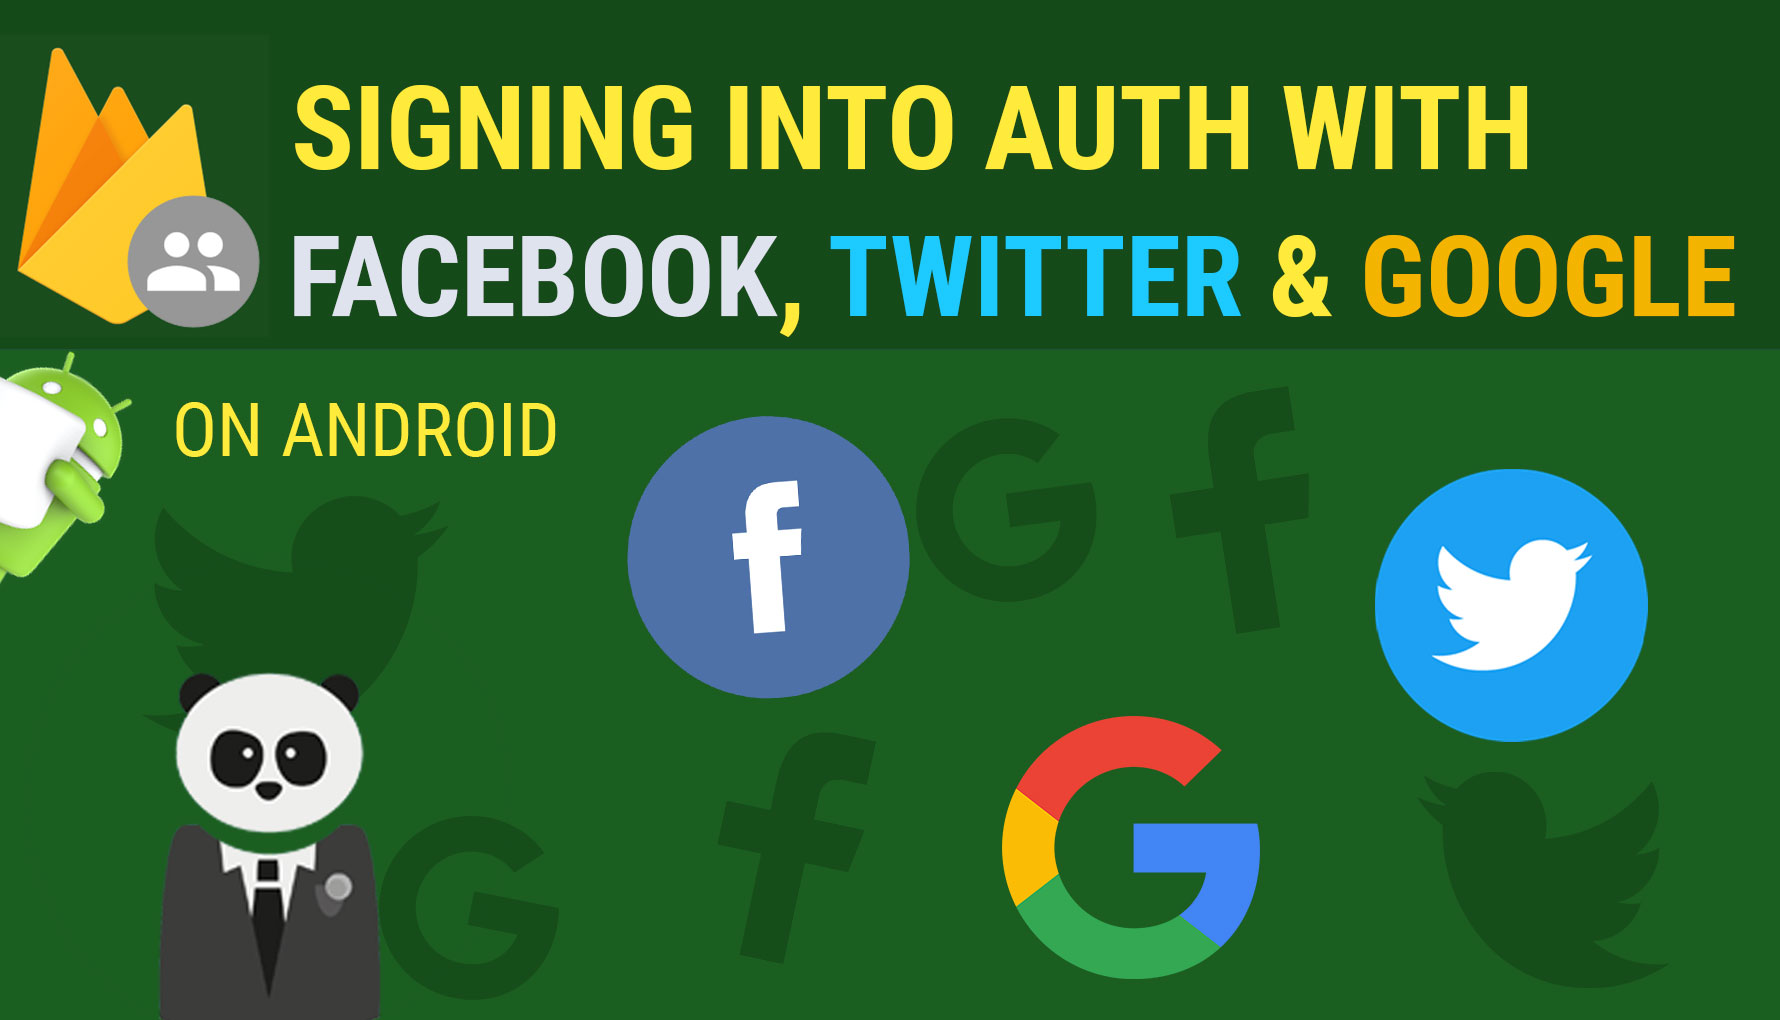 Signing into Firebase Authentication with Facebook, Twitter, and Google